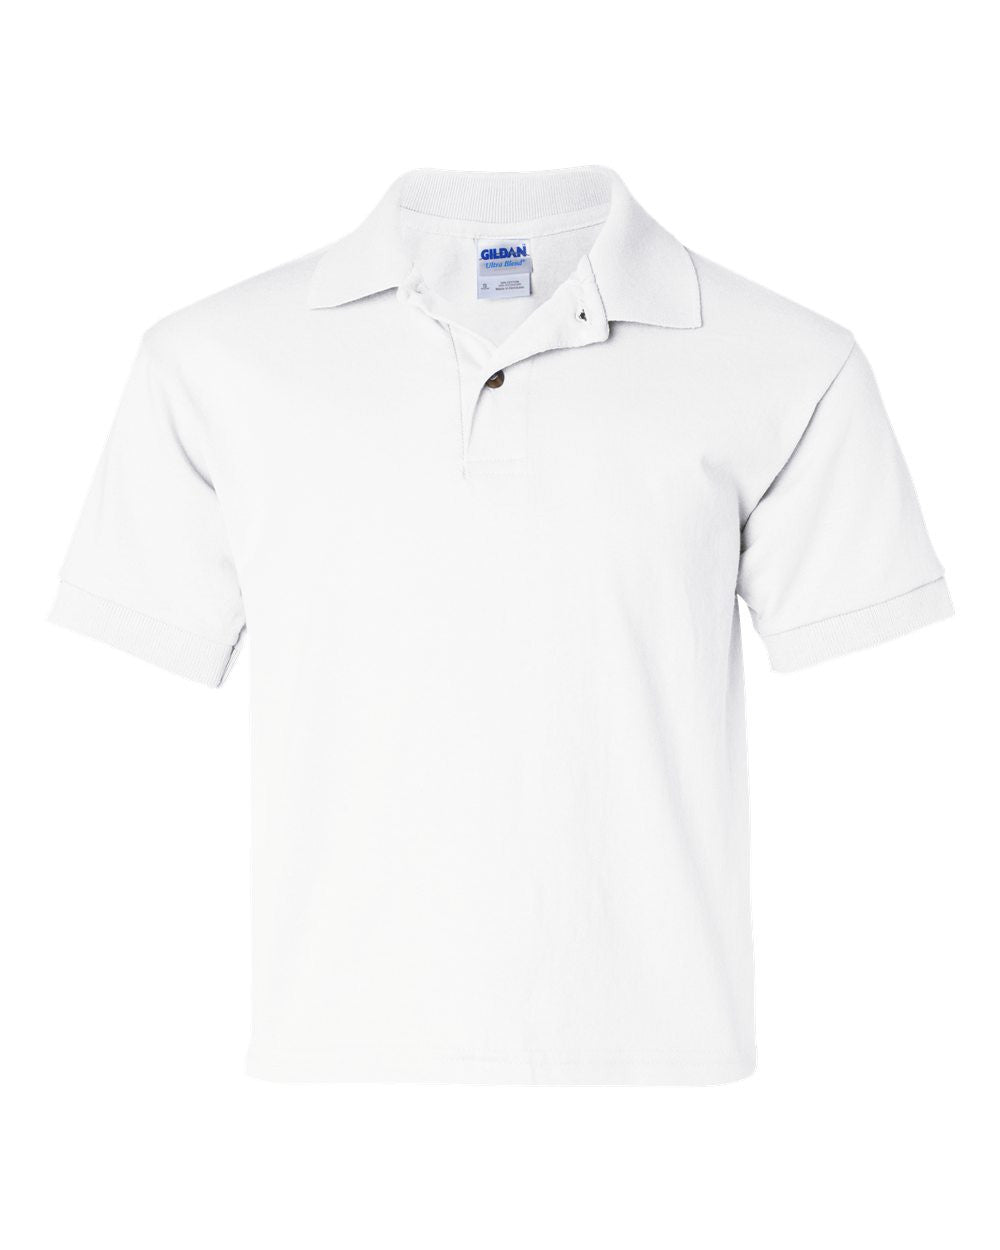 3 pack : Gildan Youth Polos Blend